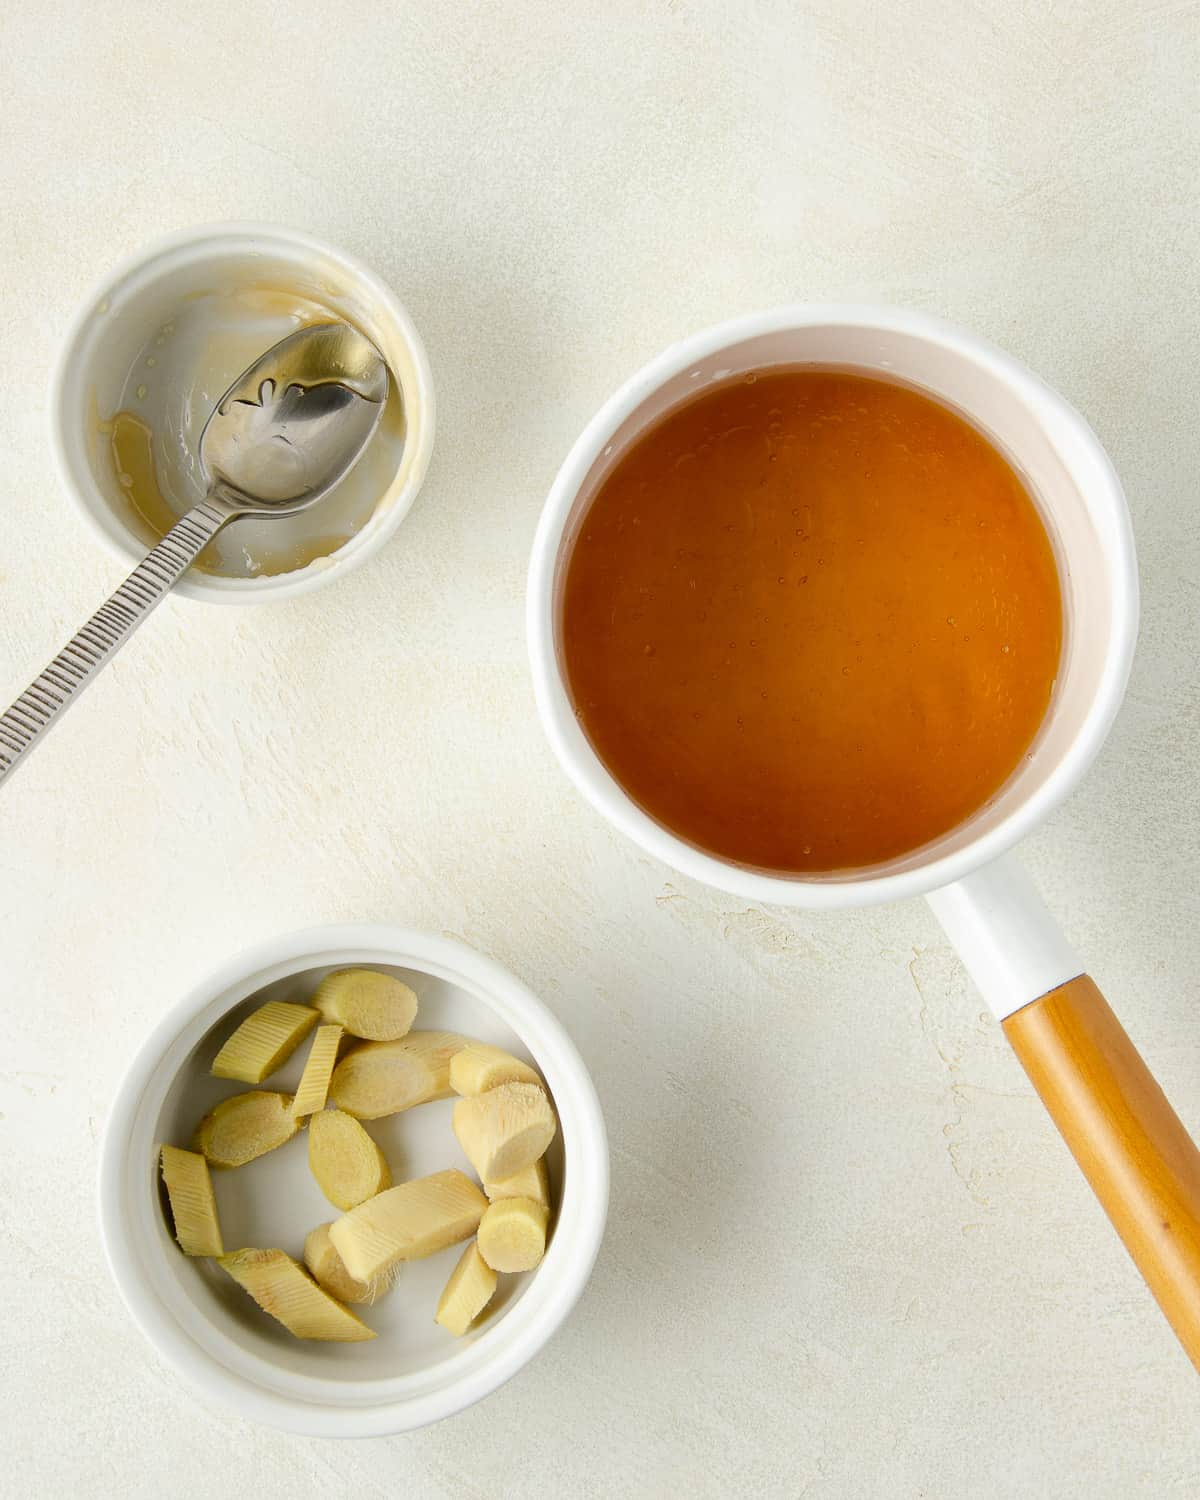 Honey and water in a small pot with sliced ginger to the side.